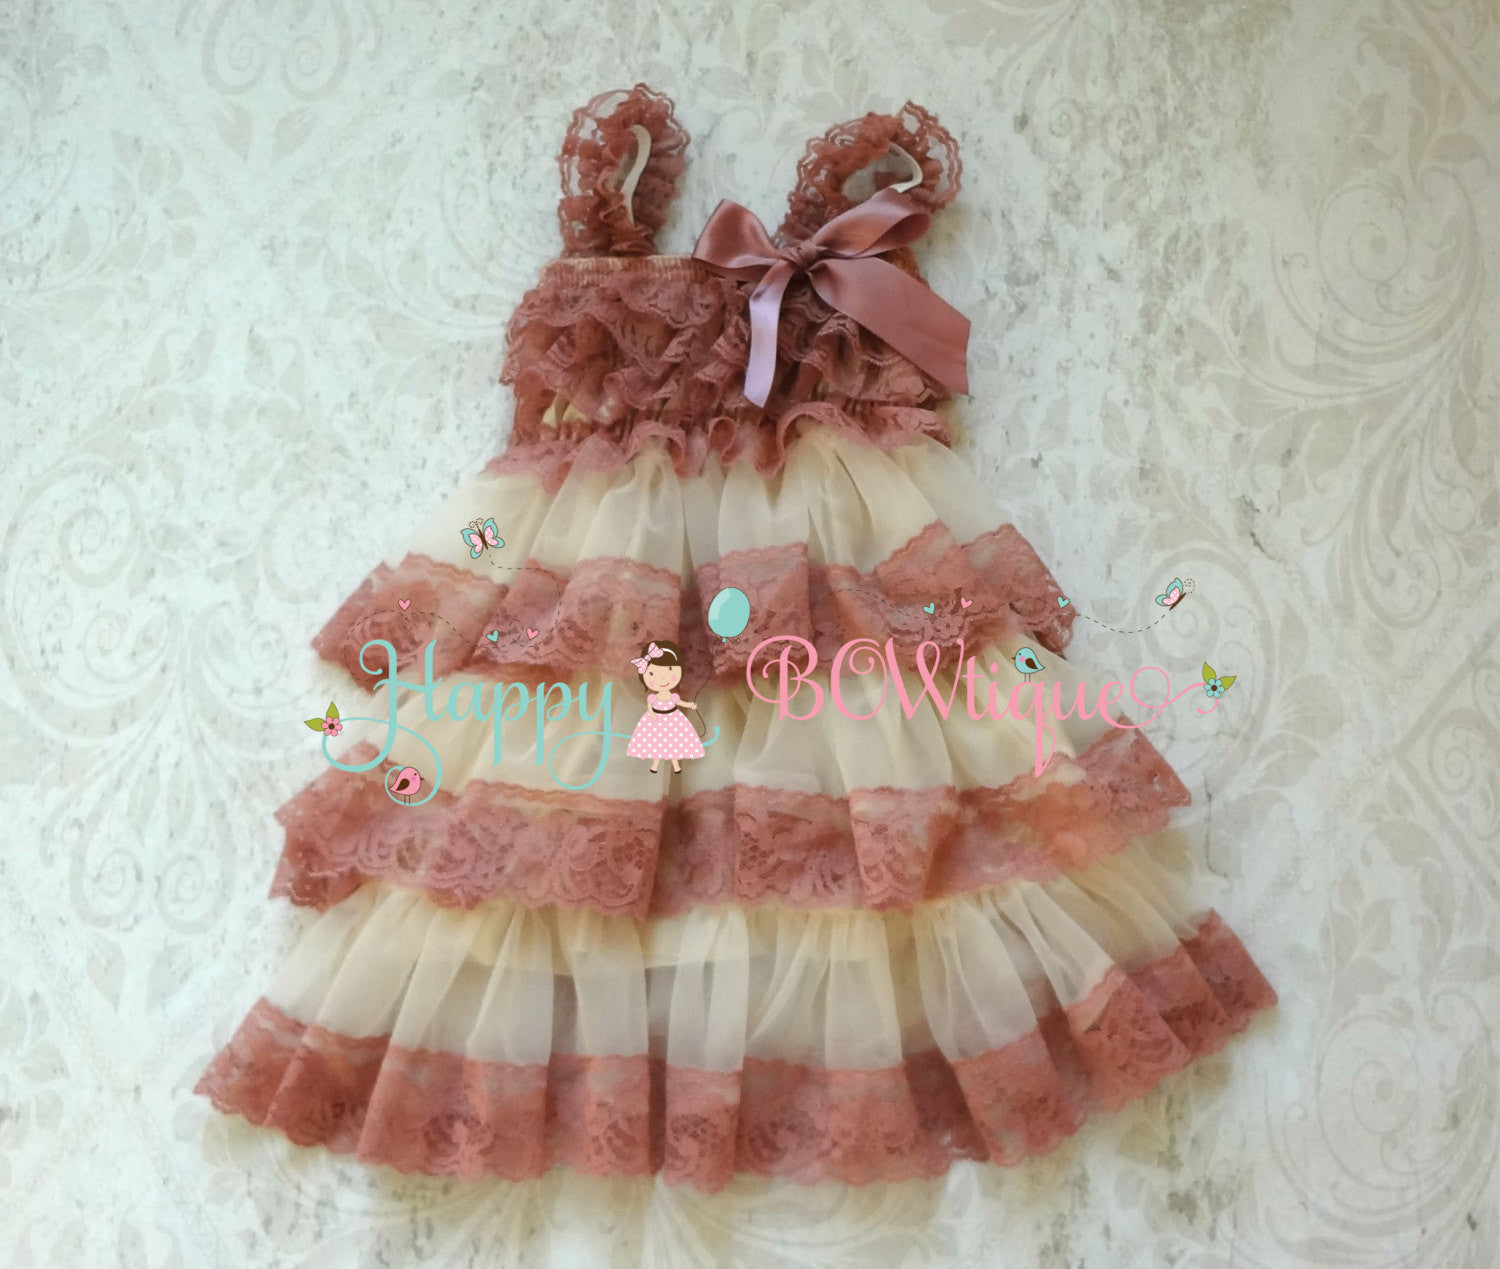 Champagne Rose Tier Chiffon lace Dress - Happy BOWtique - children's clothing, Baby Girl clothing